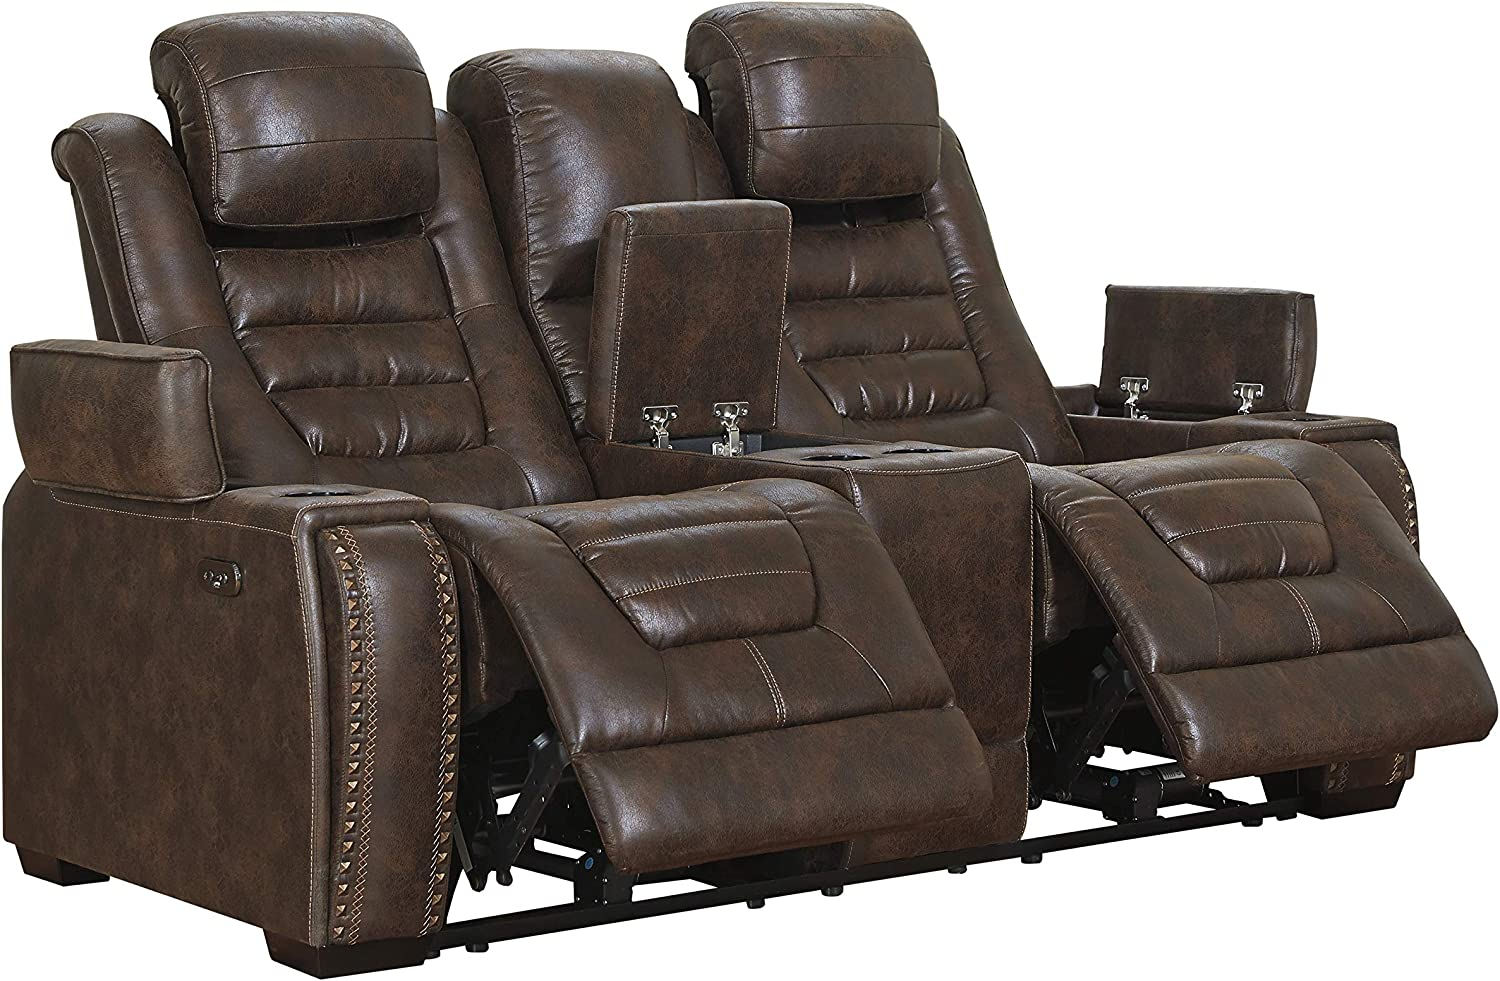 Signature Design by Ashley - Game Zone Contemporary Faux Leather Power Reclining Loveseat - Adjustable Headrest, Dark Brown